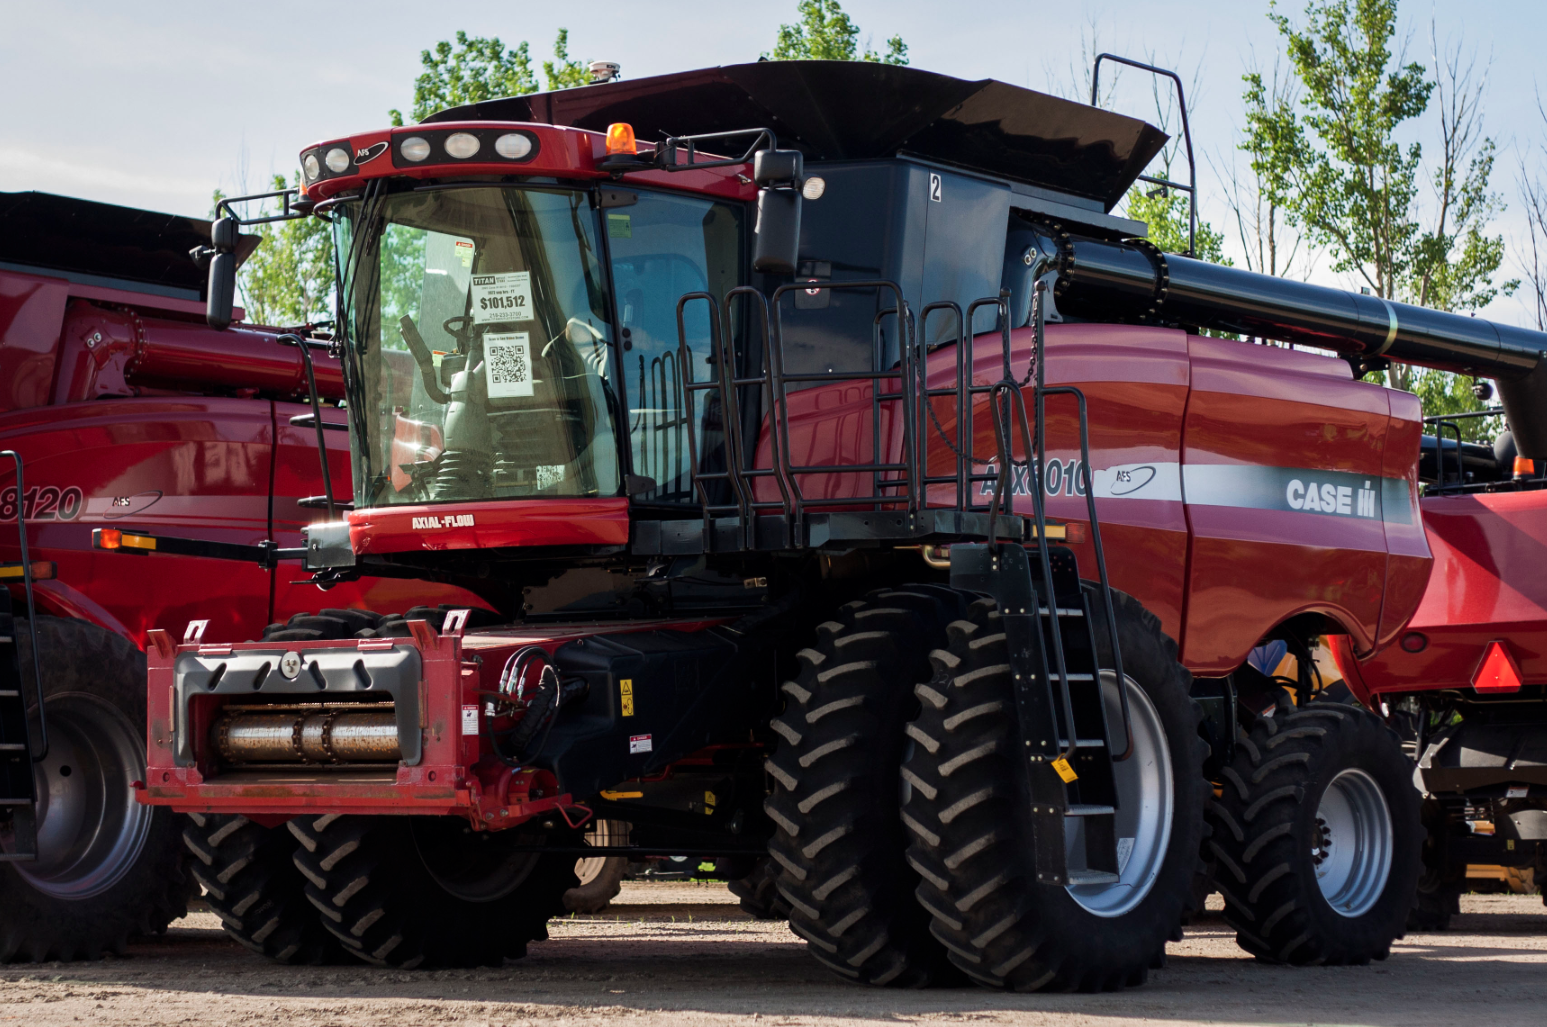 Case Ih Combine Clipart - Clipart Kid